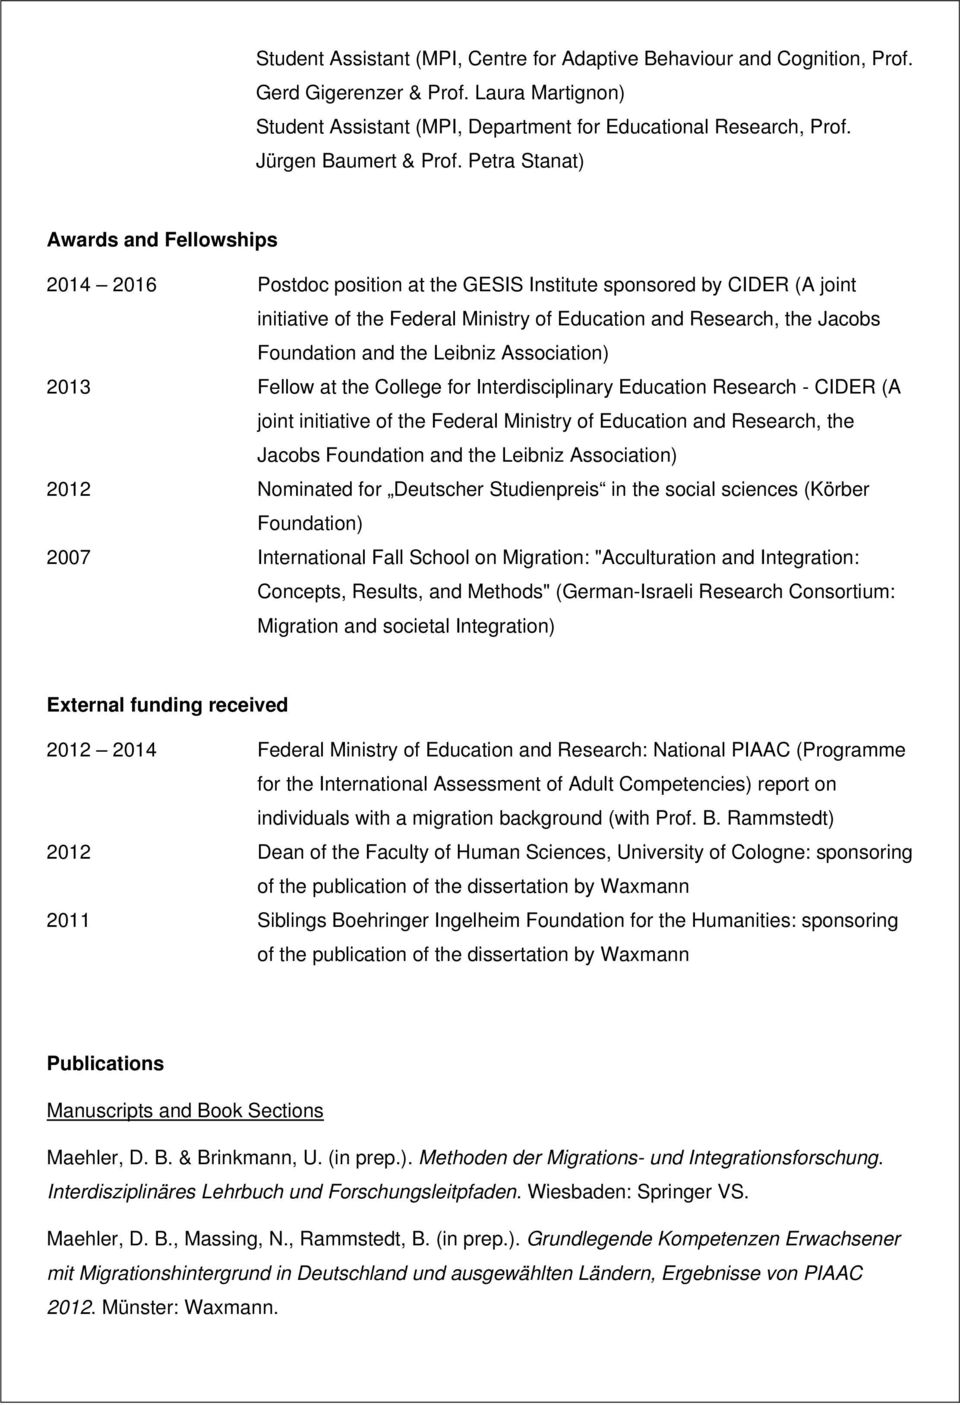 Petra Stanat) Awards and Fellowships 2014 2016 Postdoc position at the GESIS Institute sponsored by CIDER (A joint initiative of the Federal Ministry of Education and Research, the Jacobs Foundation